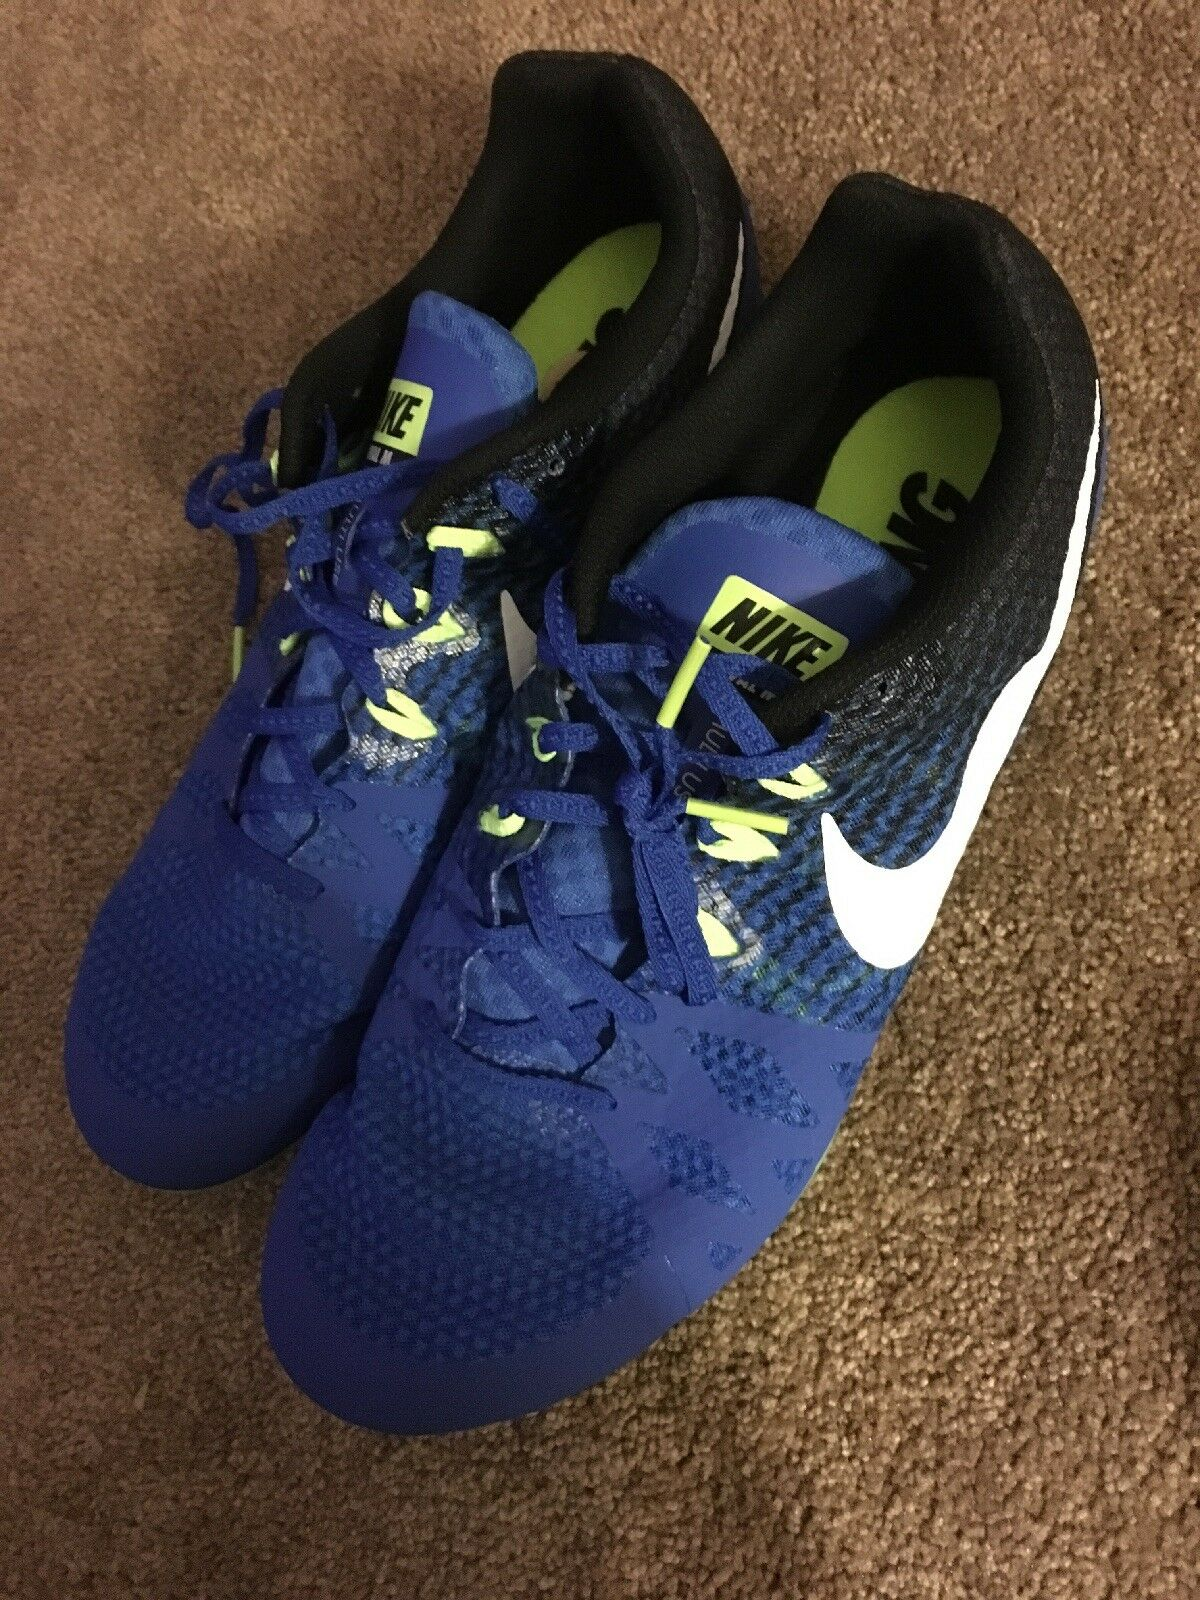 Nike Racing Zoom Rival M's Men's Track Field Running shoes No Spikes US 12